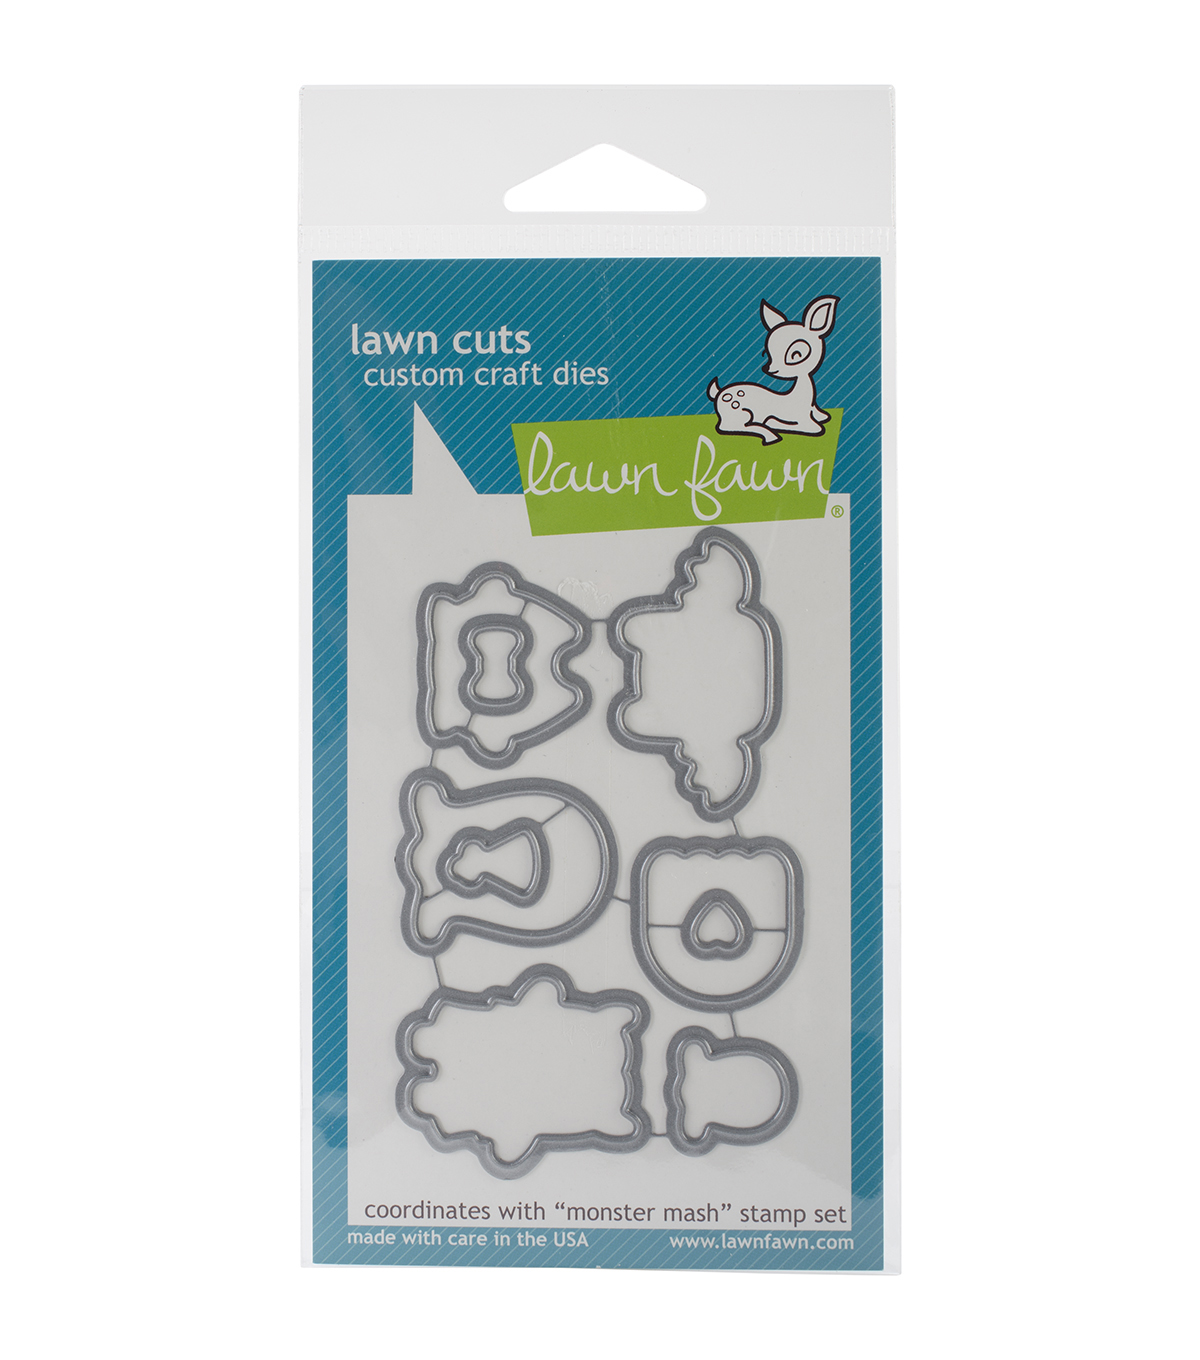 Lawn Fawn Lawn Cuts Custom Craft Die -Monster Mash